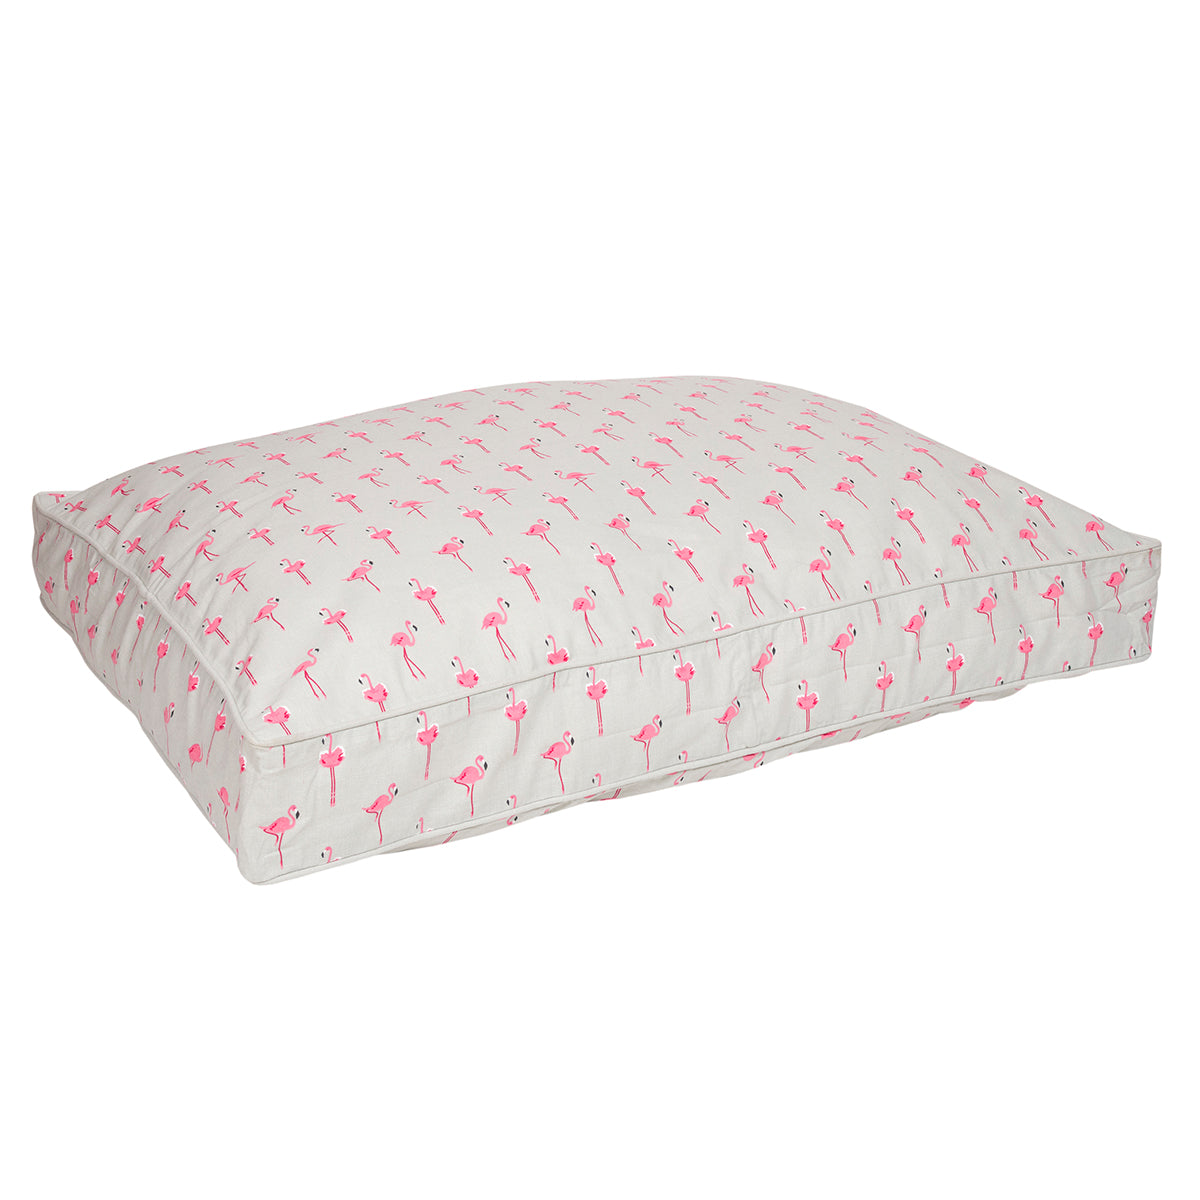 Flamingos Pet Bed Mattress